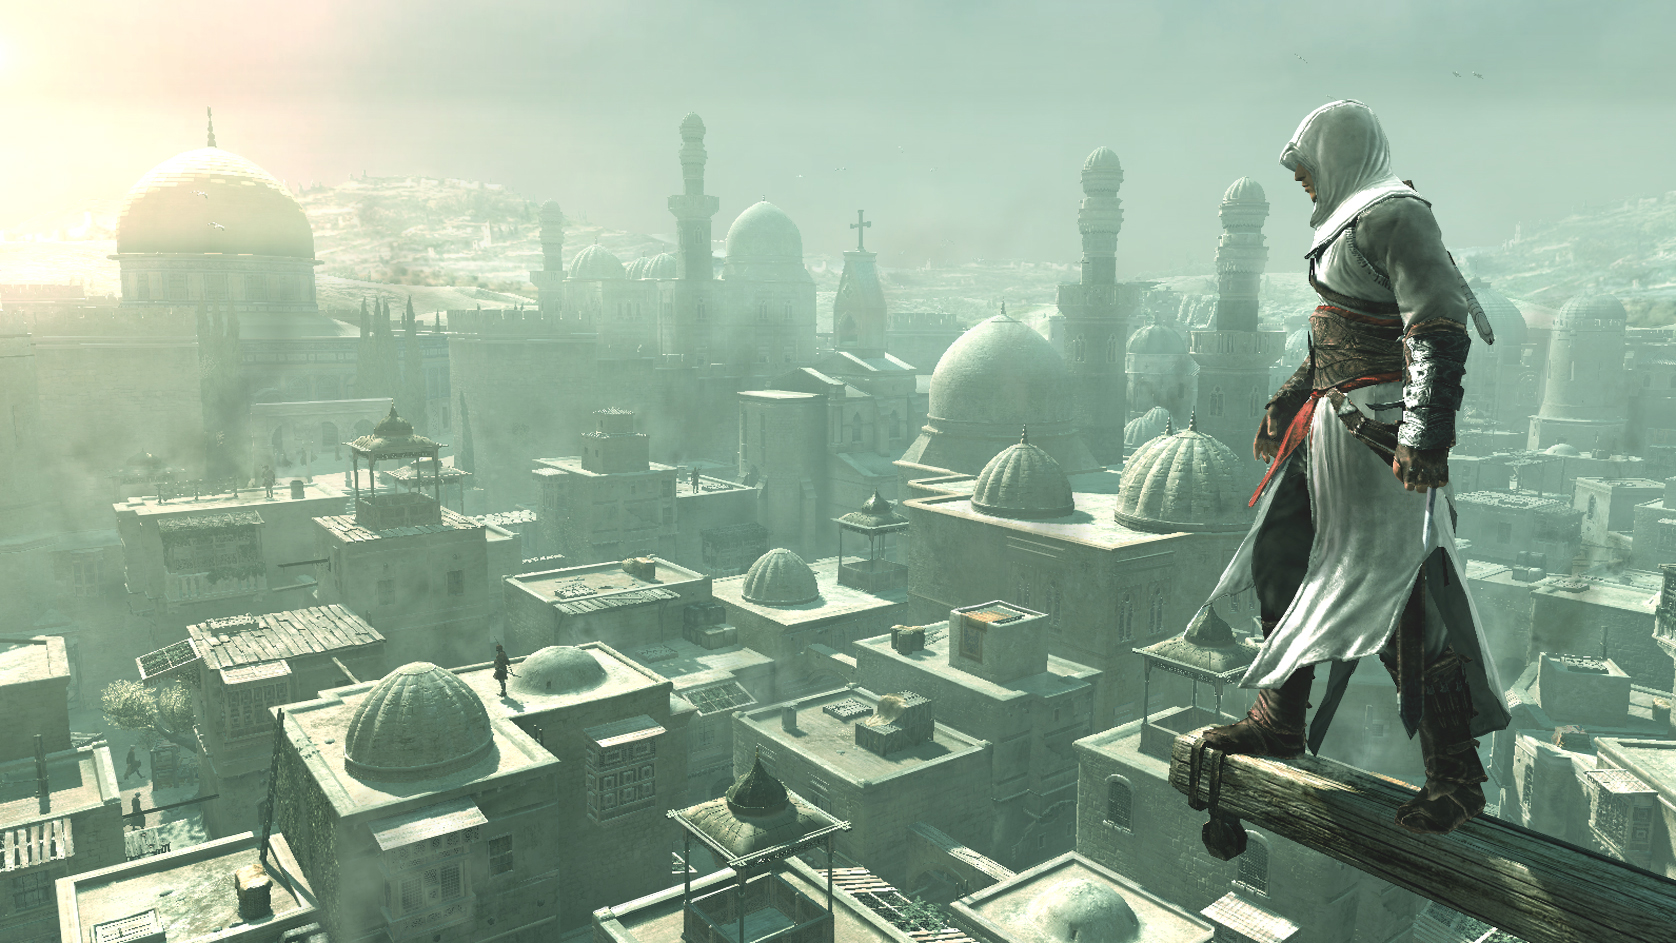 http://images2.wikia.nocookie.net/__cb20120206091035/assassinscreed/fr/images/7/73/J%C3%A9rusalem.jpg